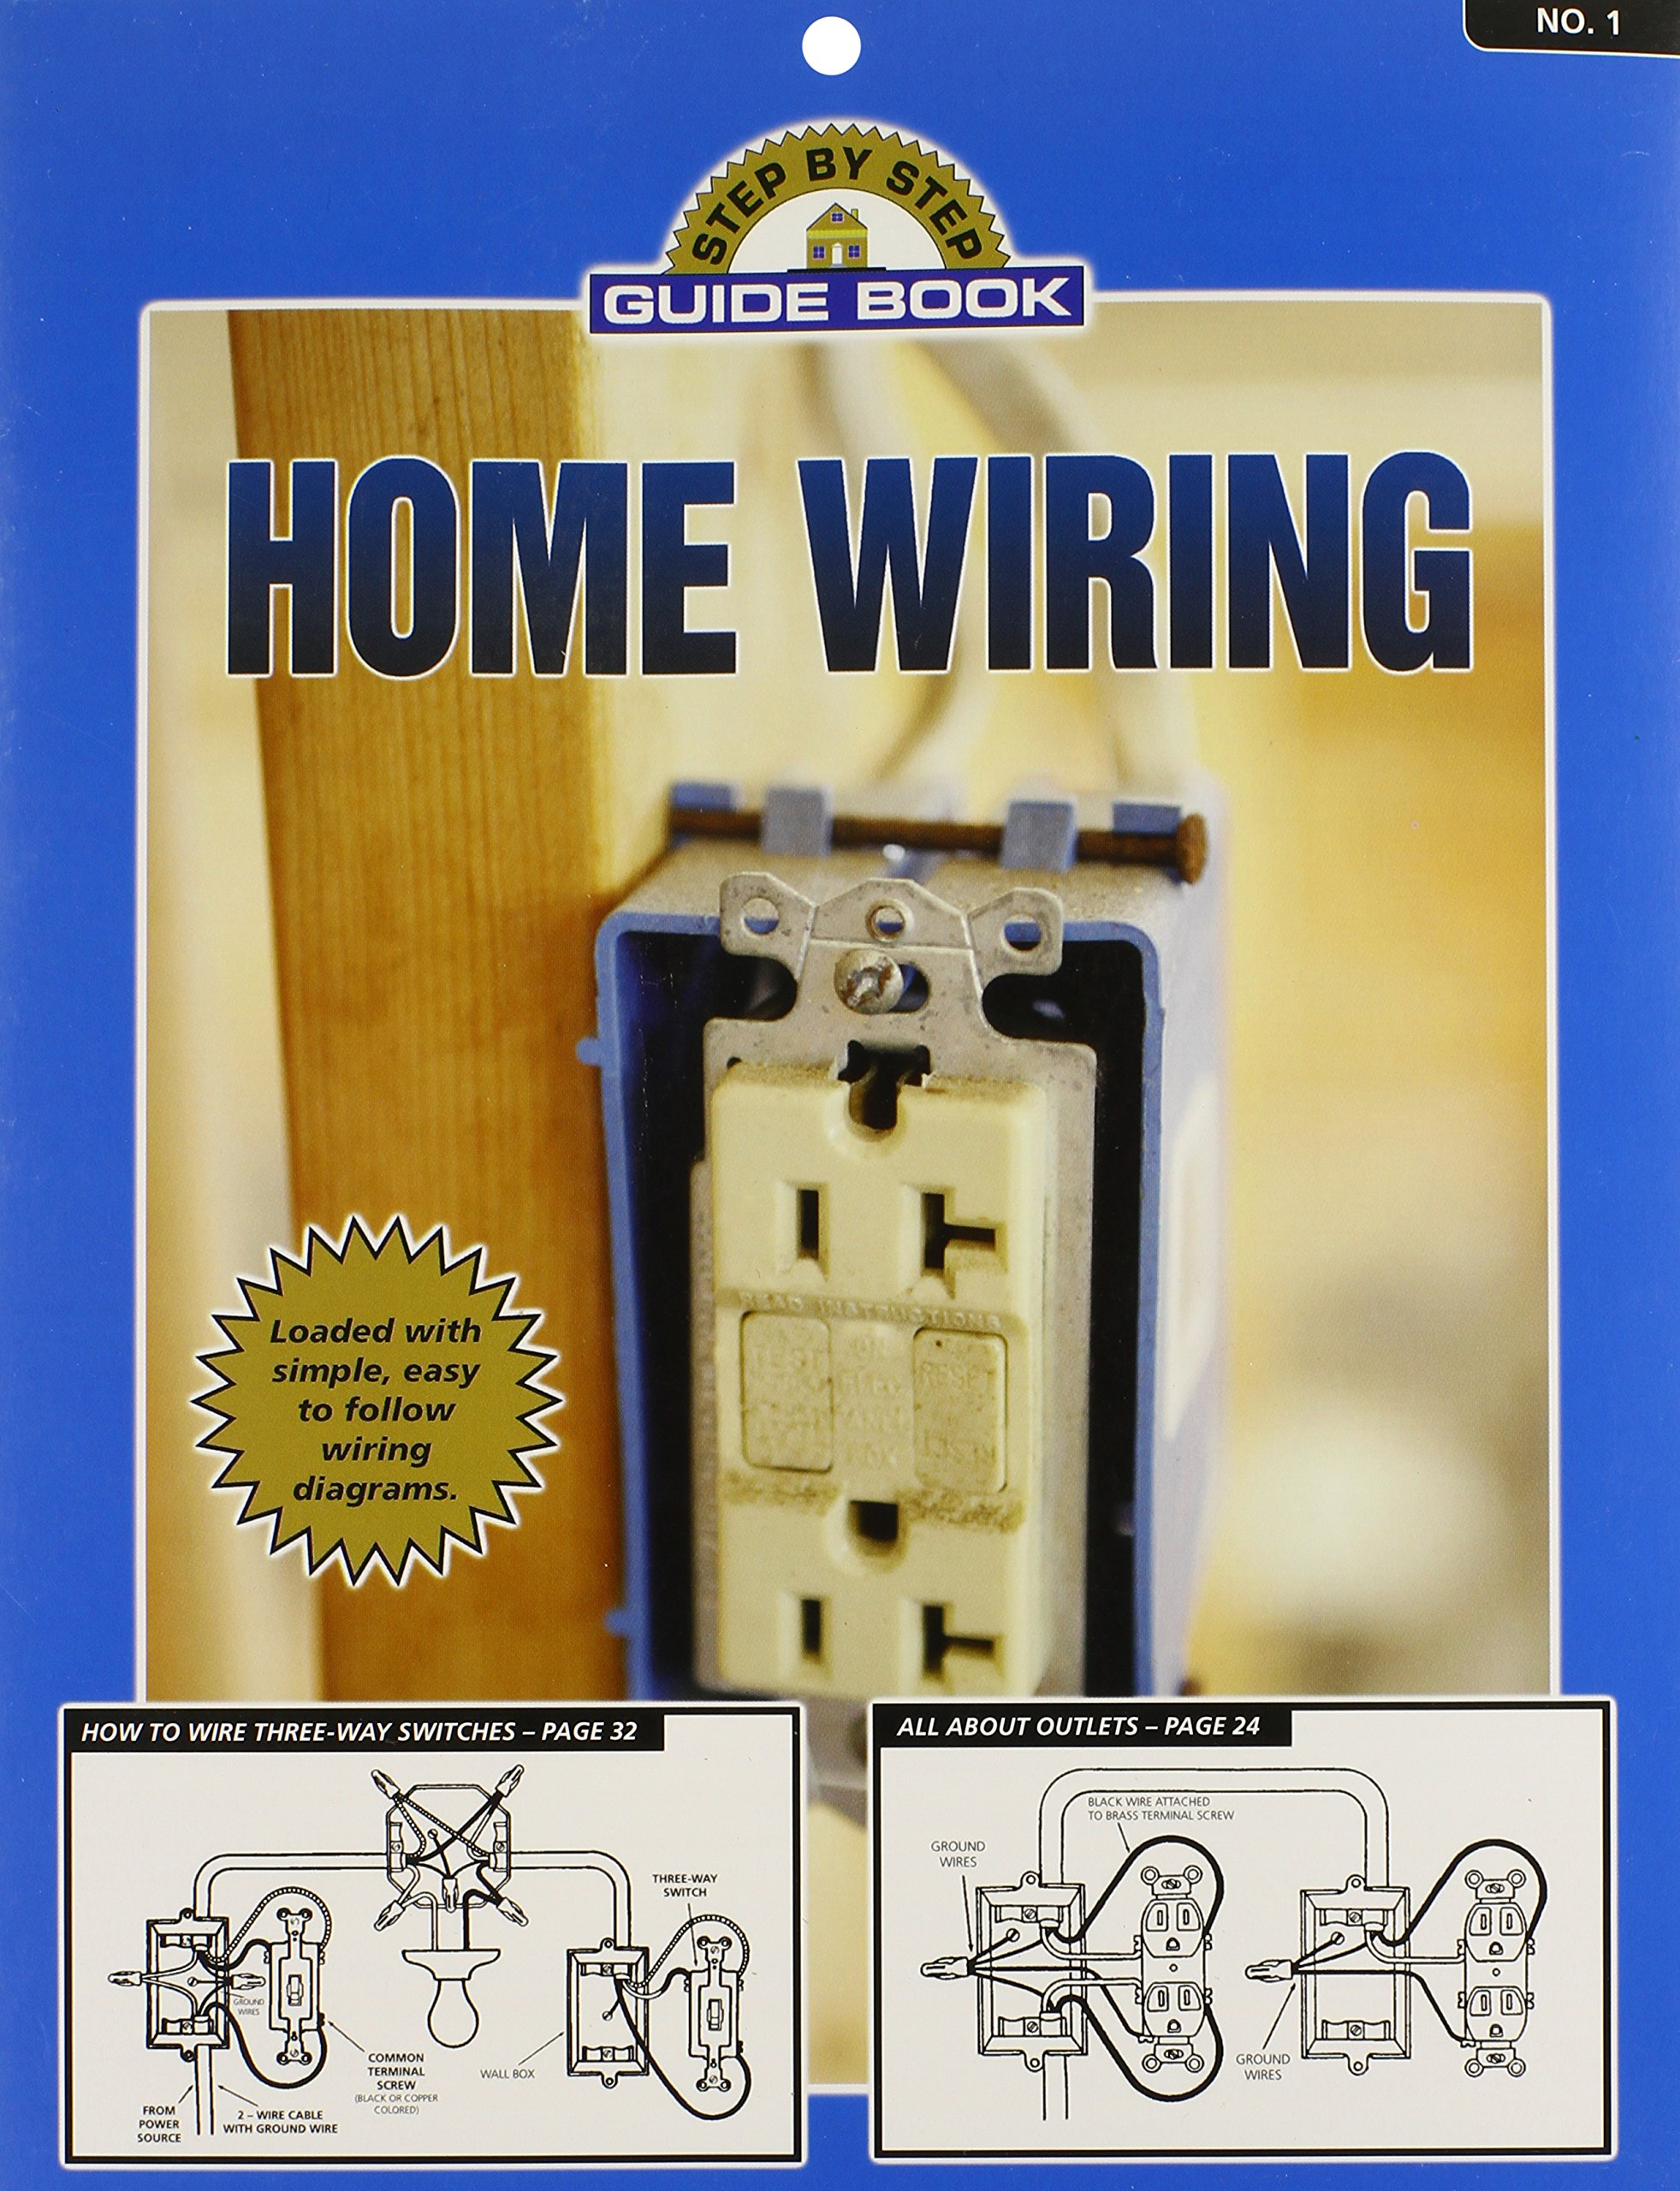 step by step guide book on home wiring ray mcreynolds elaine rh amazon com